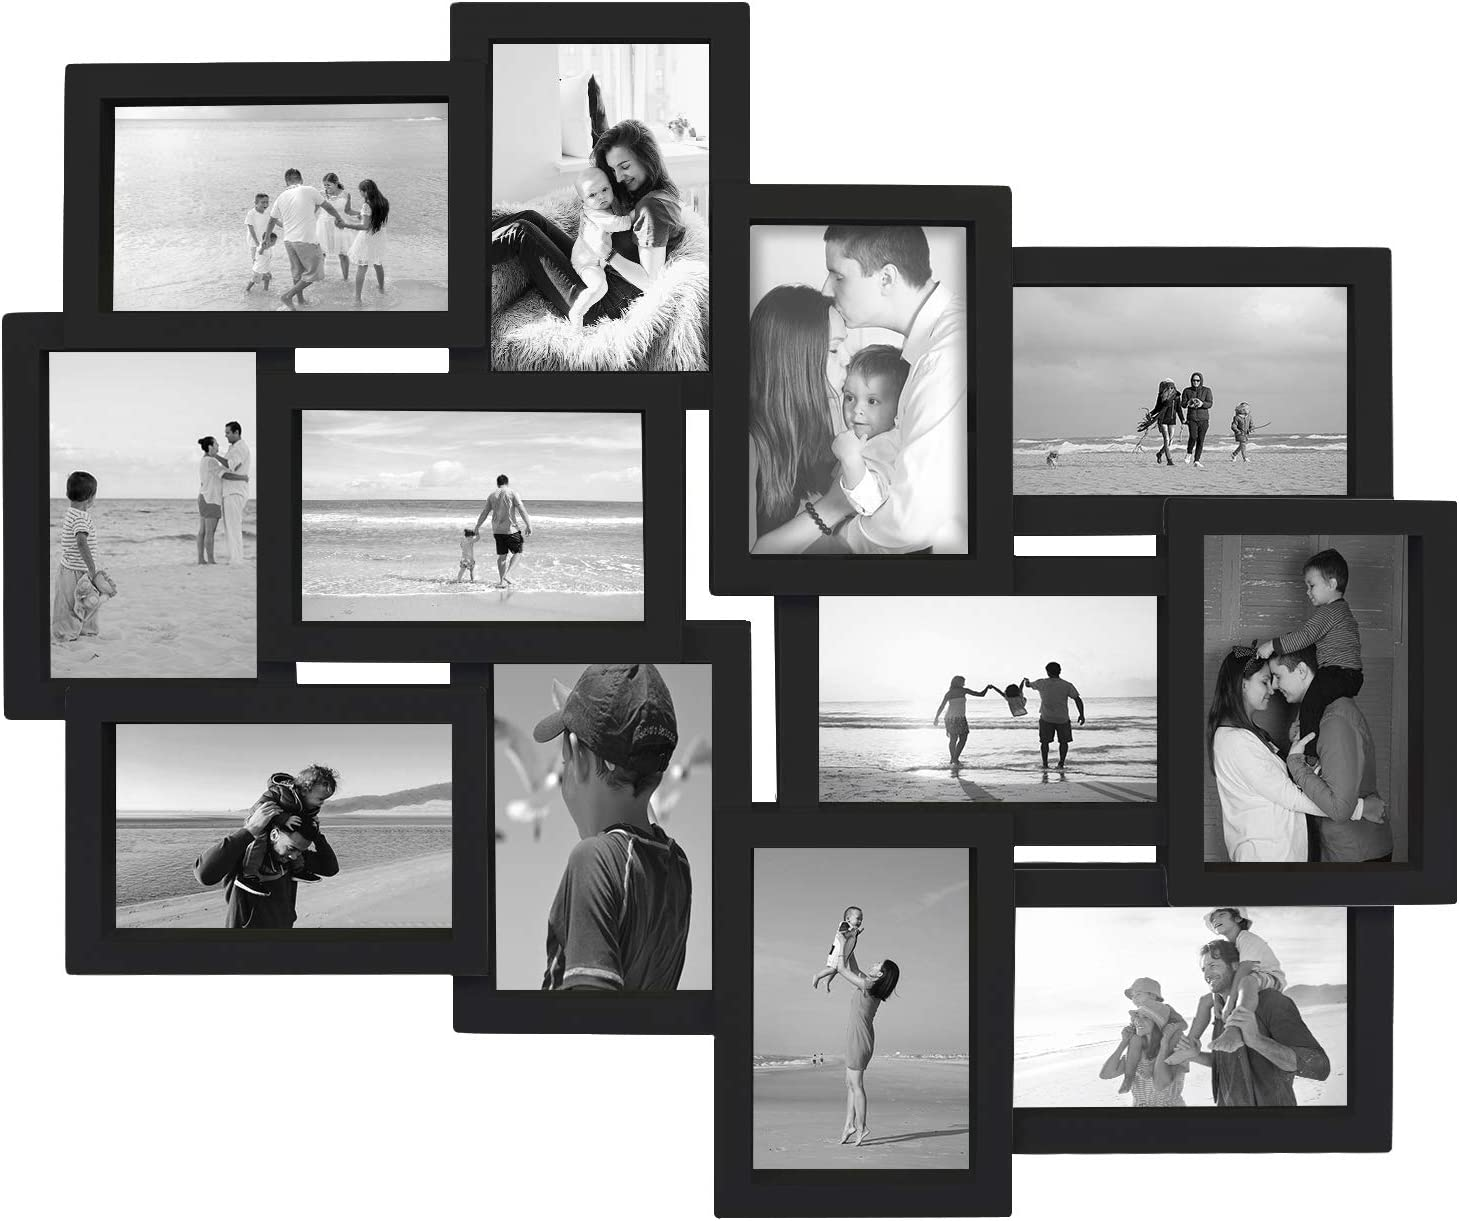 Jerry & Maggie - Photo Frame 19x22 Black Picture Frame Selfie Gallery Collage Wall Hanging for 6x4 Photo - 12 Photo Sockets - Wall Mounting Design